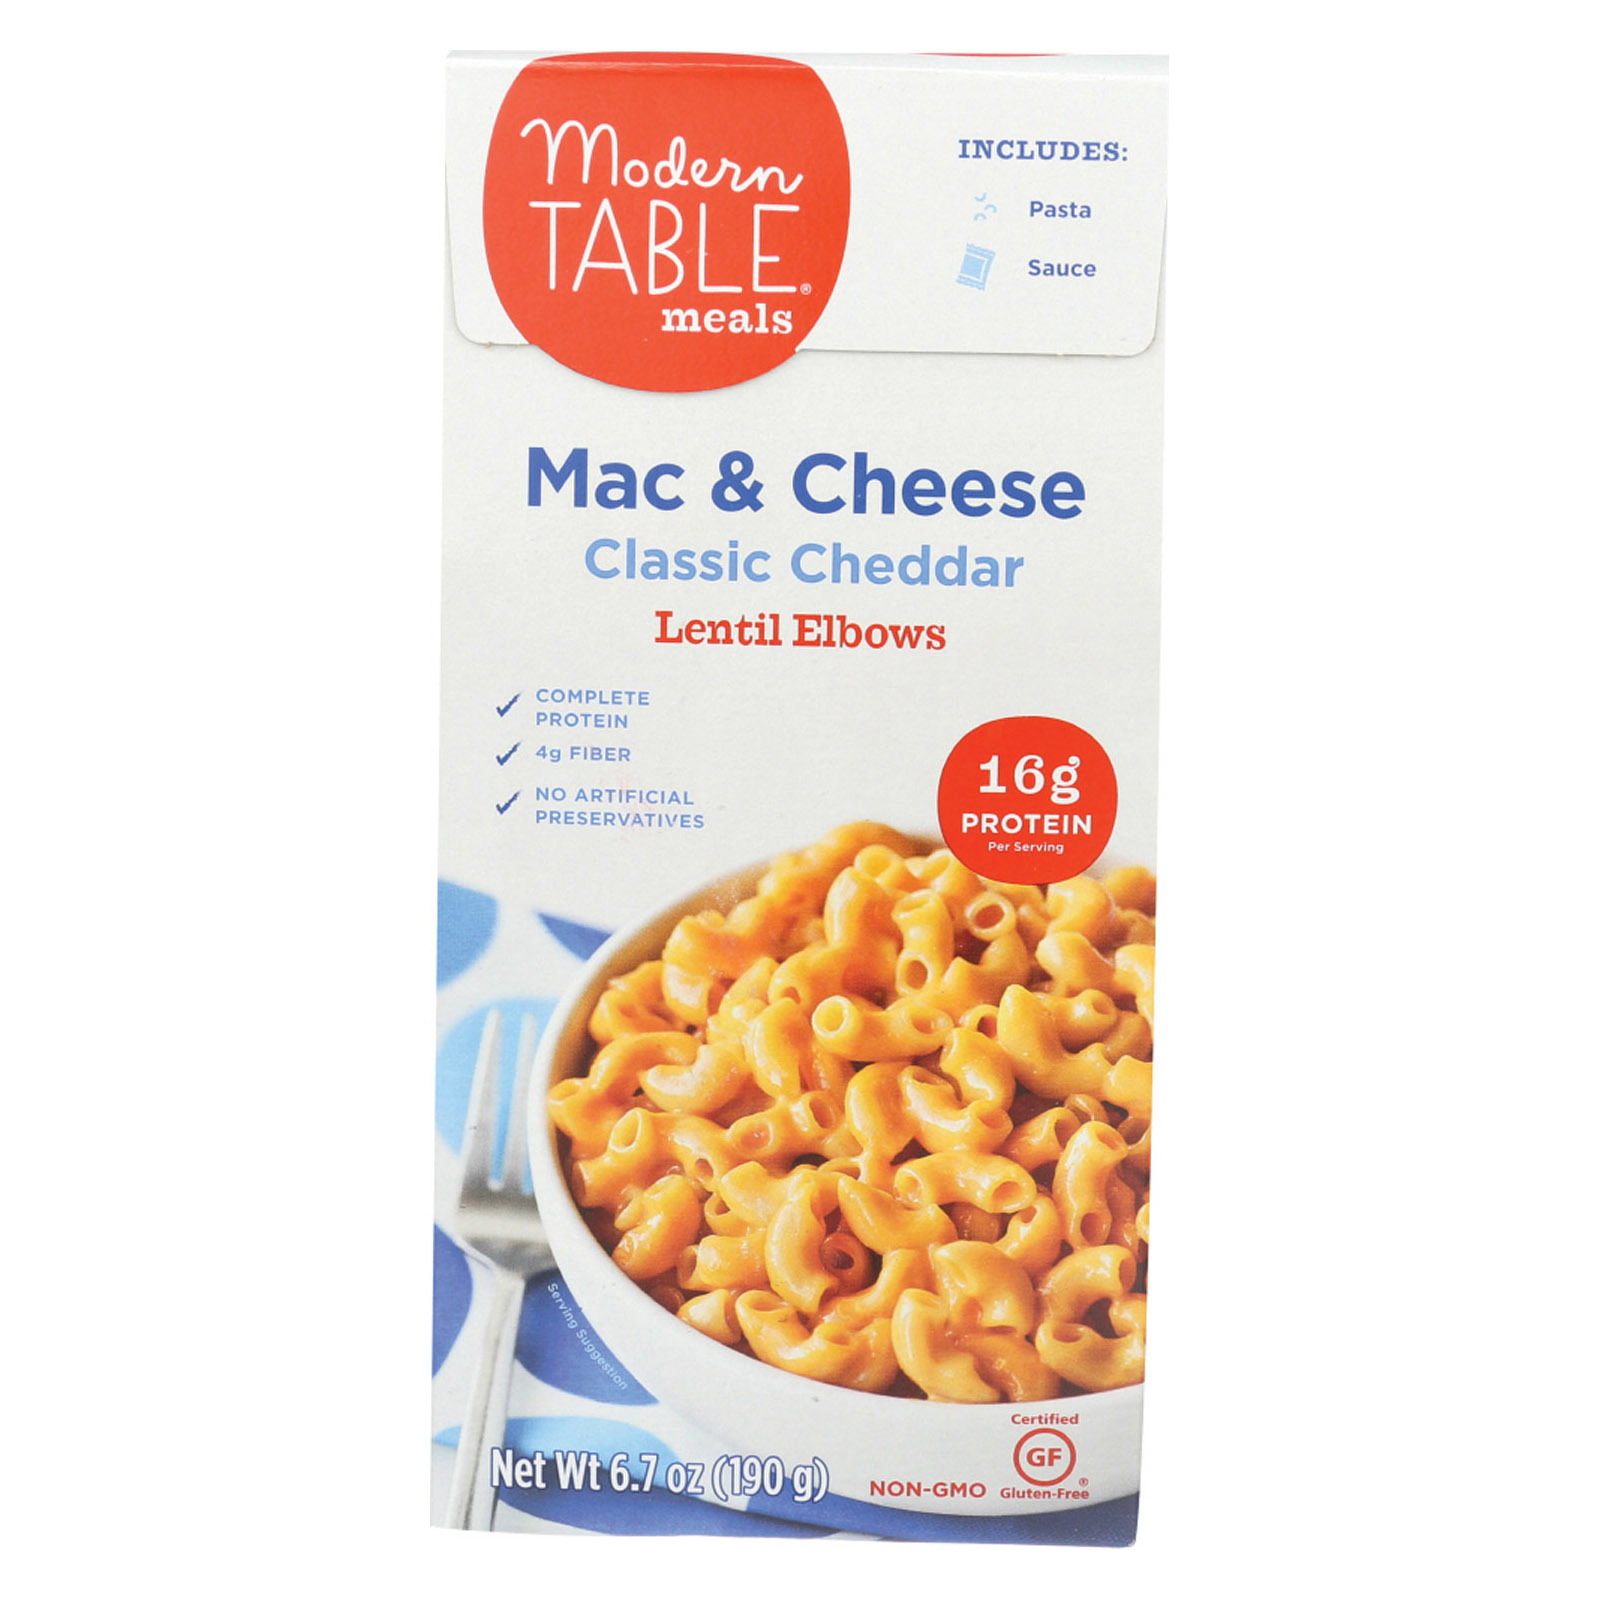 Modern Table Lentil Elbow Mac & Cheese - Classic Cheddar - Case of 6 - 6.7 oz